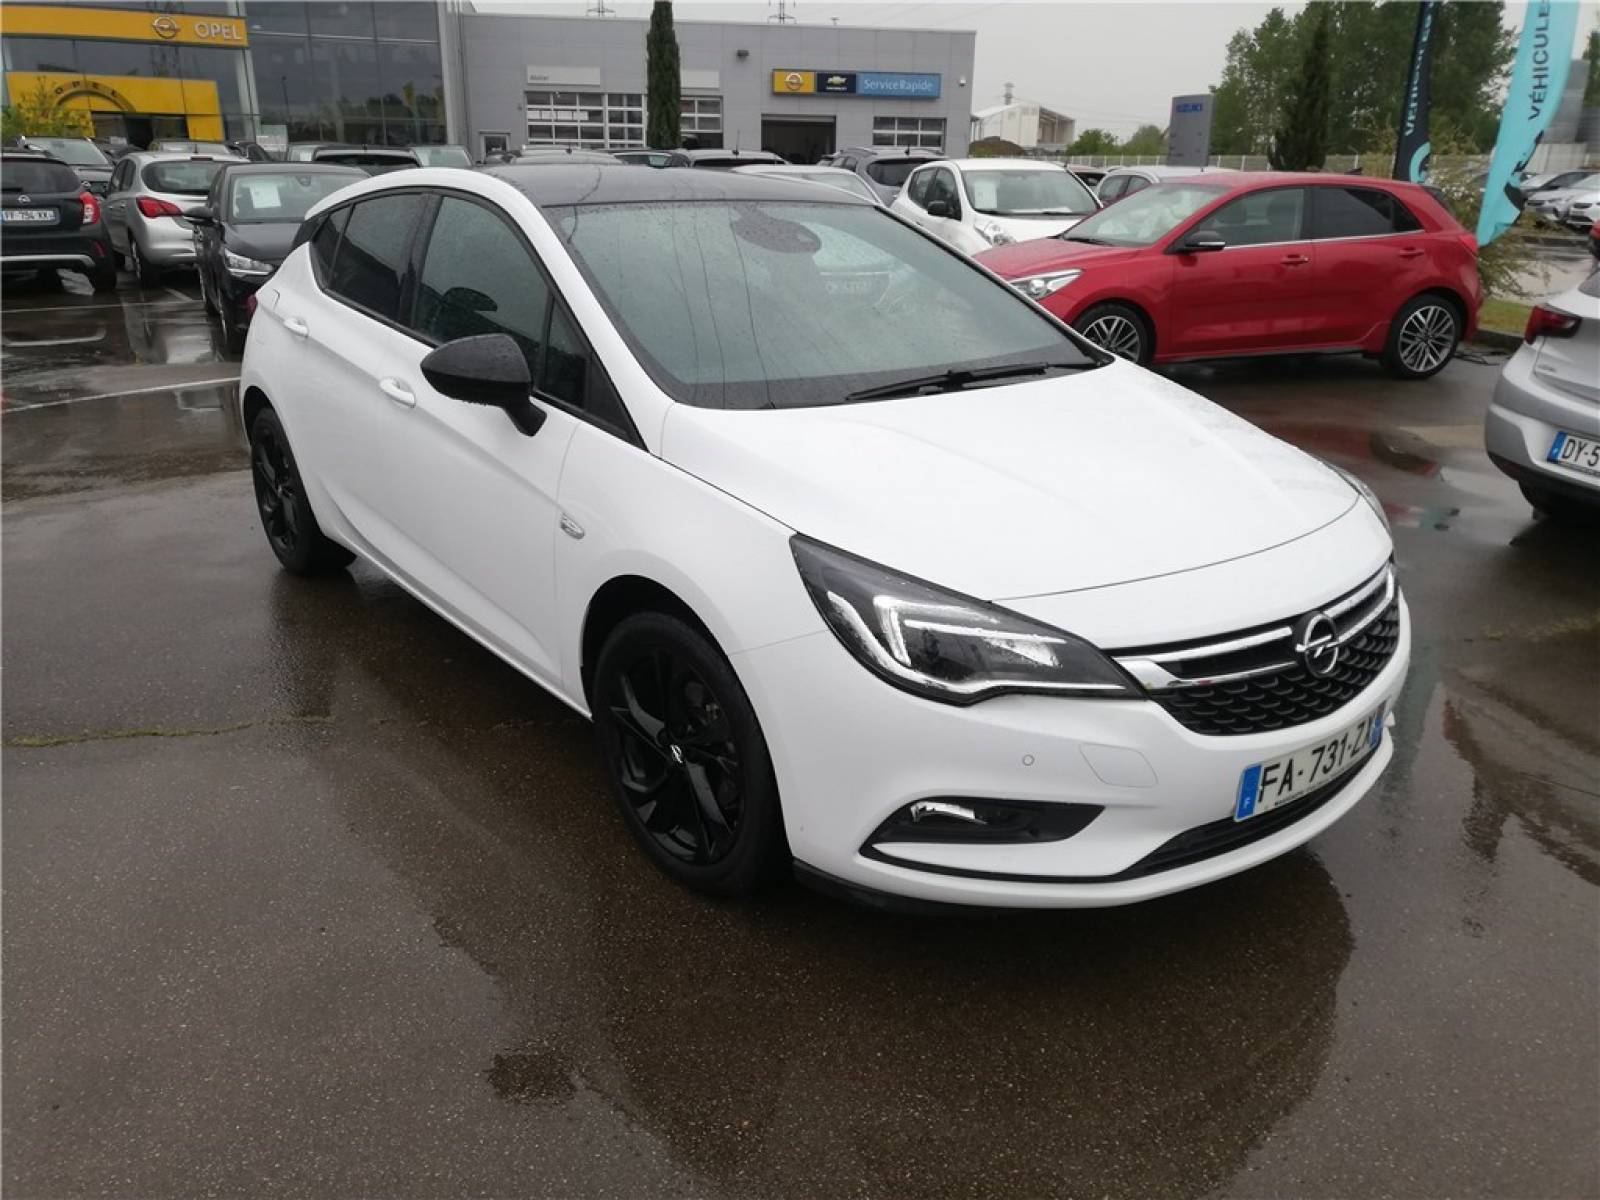 OPEL Astra 1.0 Turbo 105 ch ECOTEC Start/Stop - véhicule d'occasion - Groupe Guillet - Opel Magicauto - Chalon-sur-Saône - 71380 - Saint-Marcel - 7